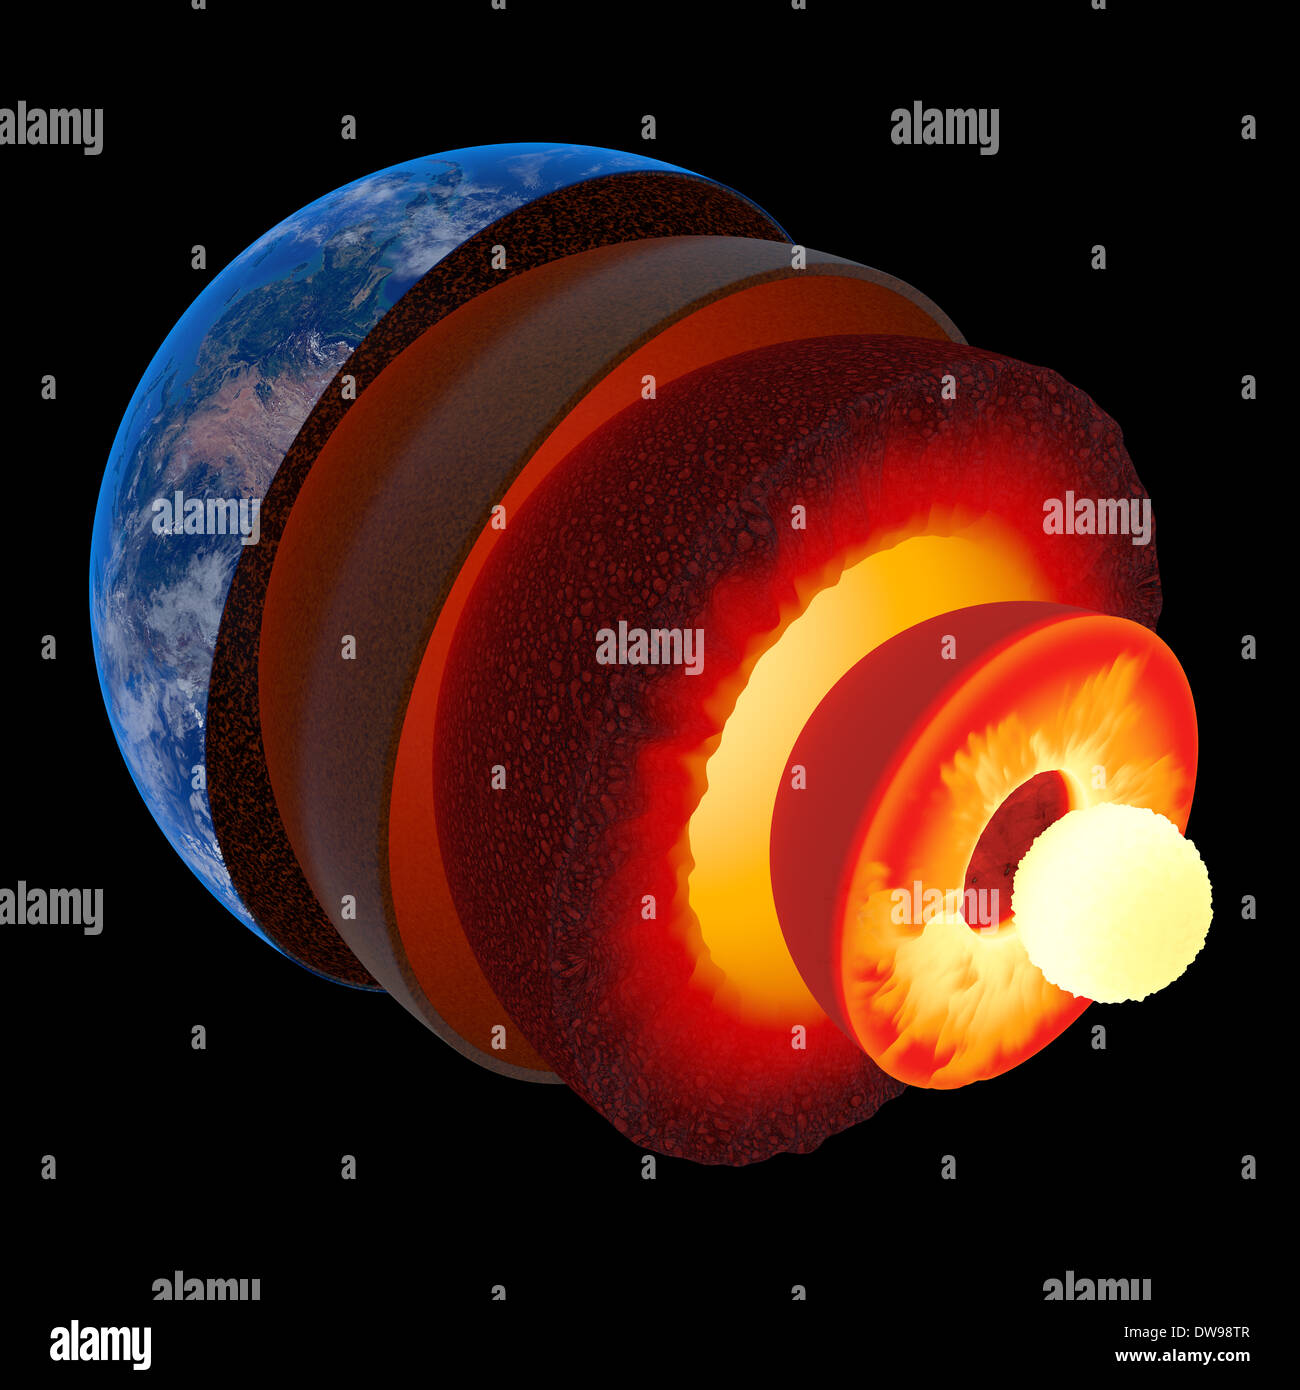 Layers of earth stock photos layers of earth stock images alamy earth core structure illustrated with geological layers according to scale isolated on black texture ccuart Images